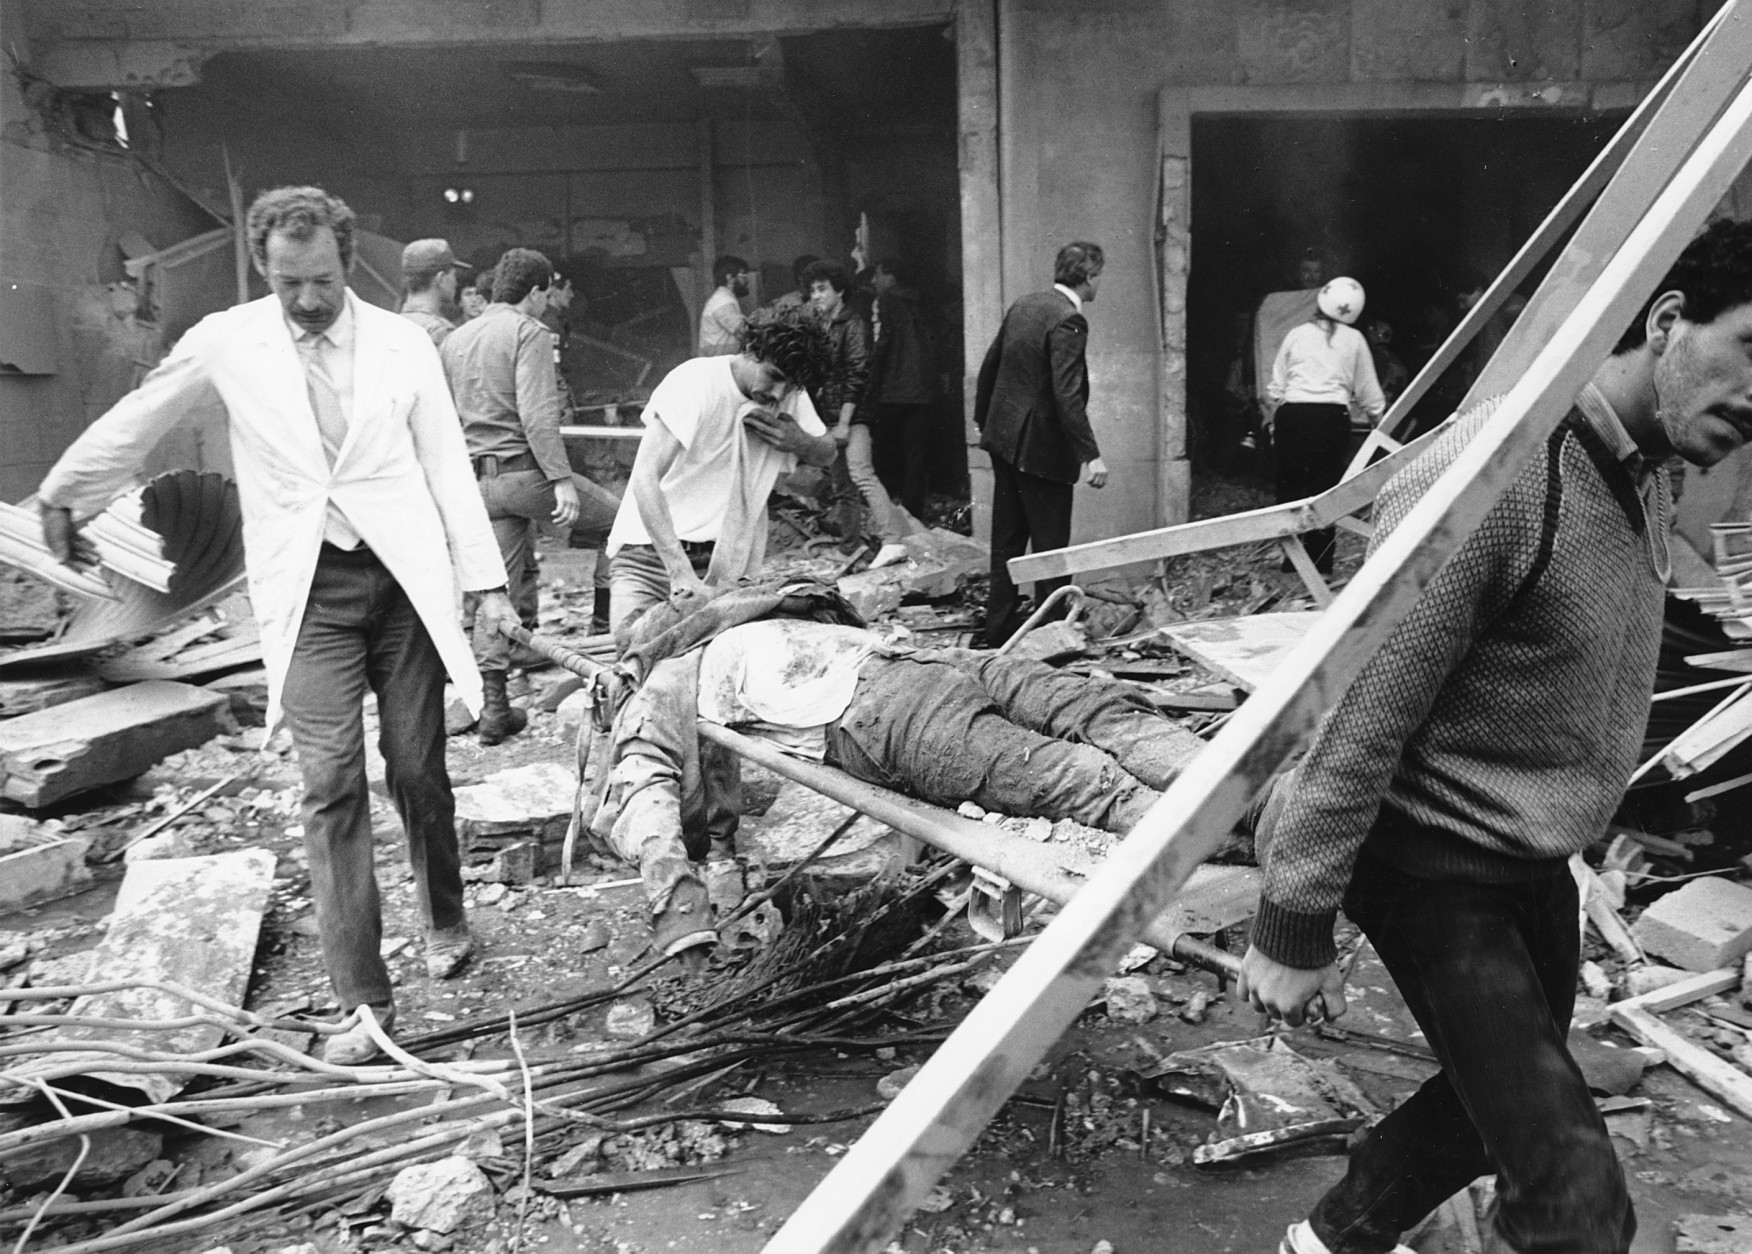 Rescue workers are shown carrying the body of a victim of the bomb blast at the American Embassy in Beirut, Lebanon, on April 18, 1983. The entire front of the seven-story building collapsed. (AP Photo/Jamal)